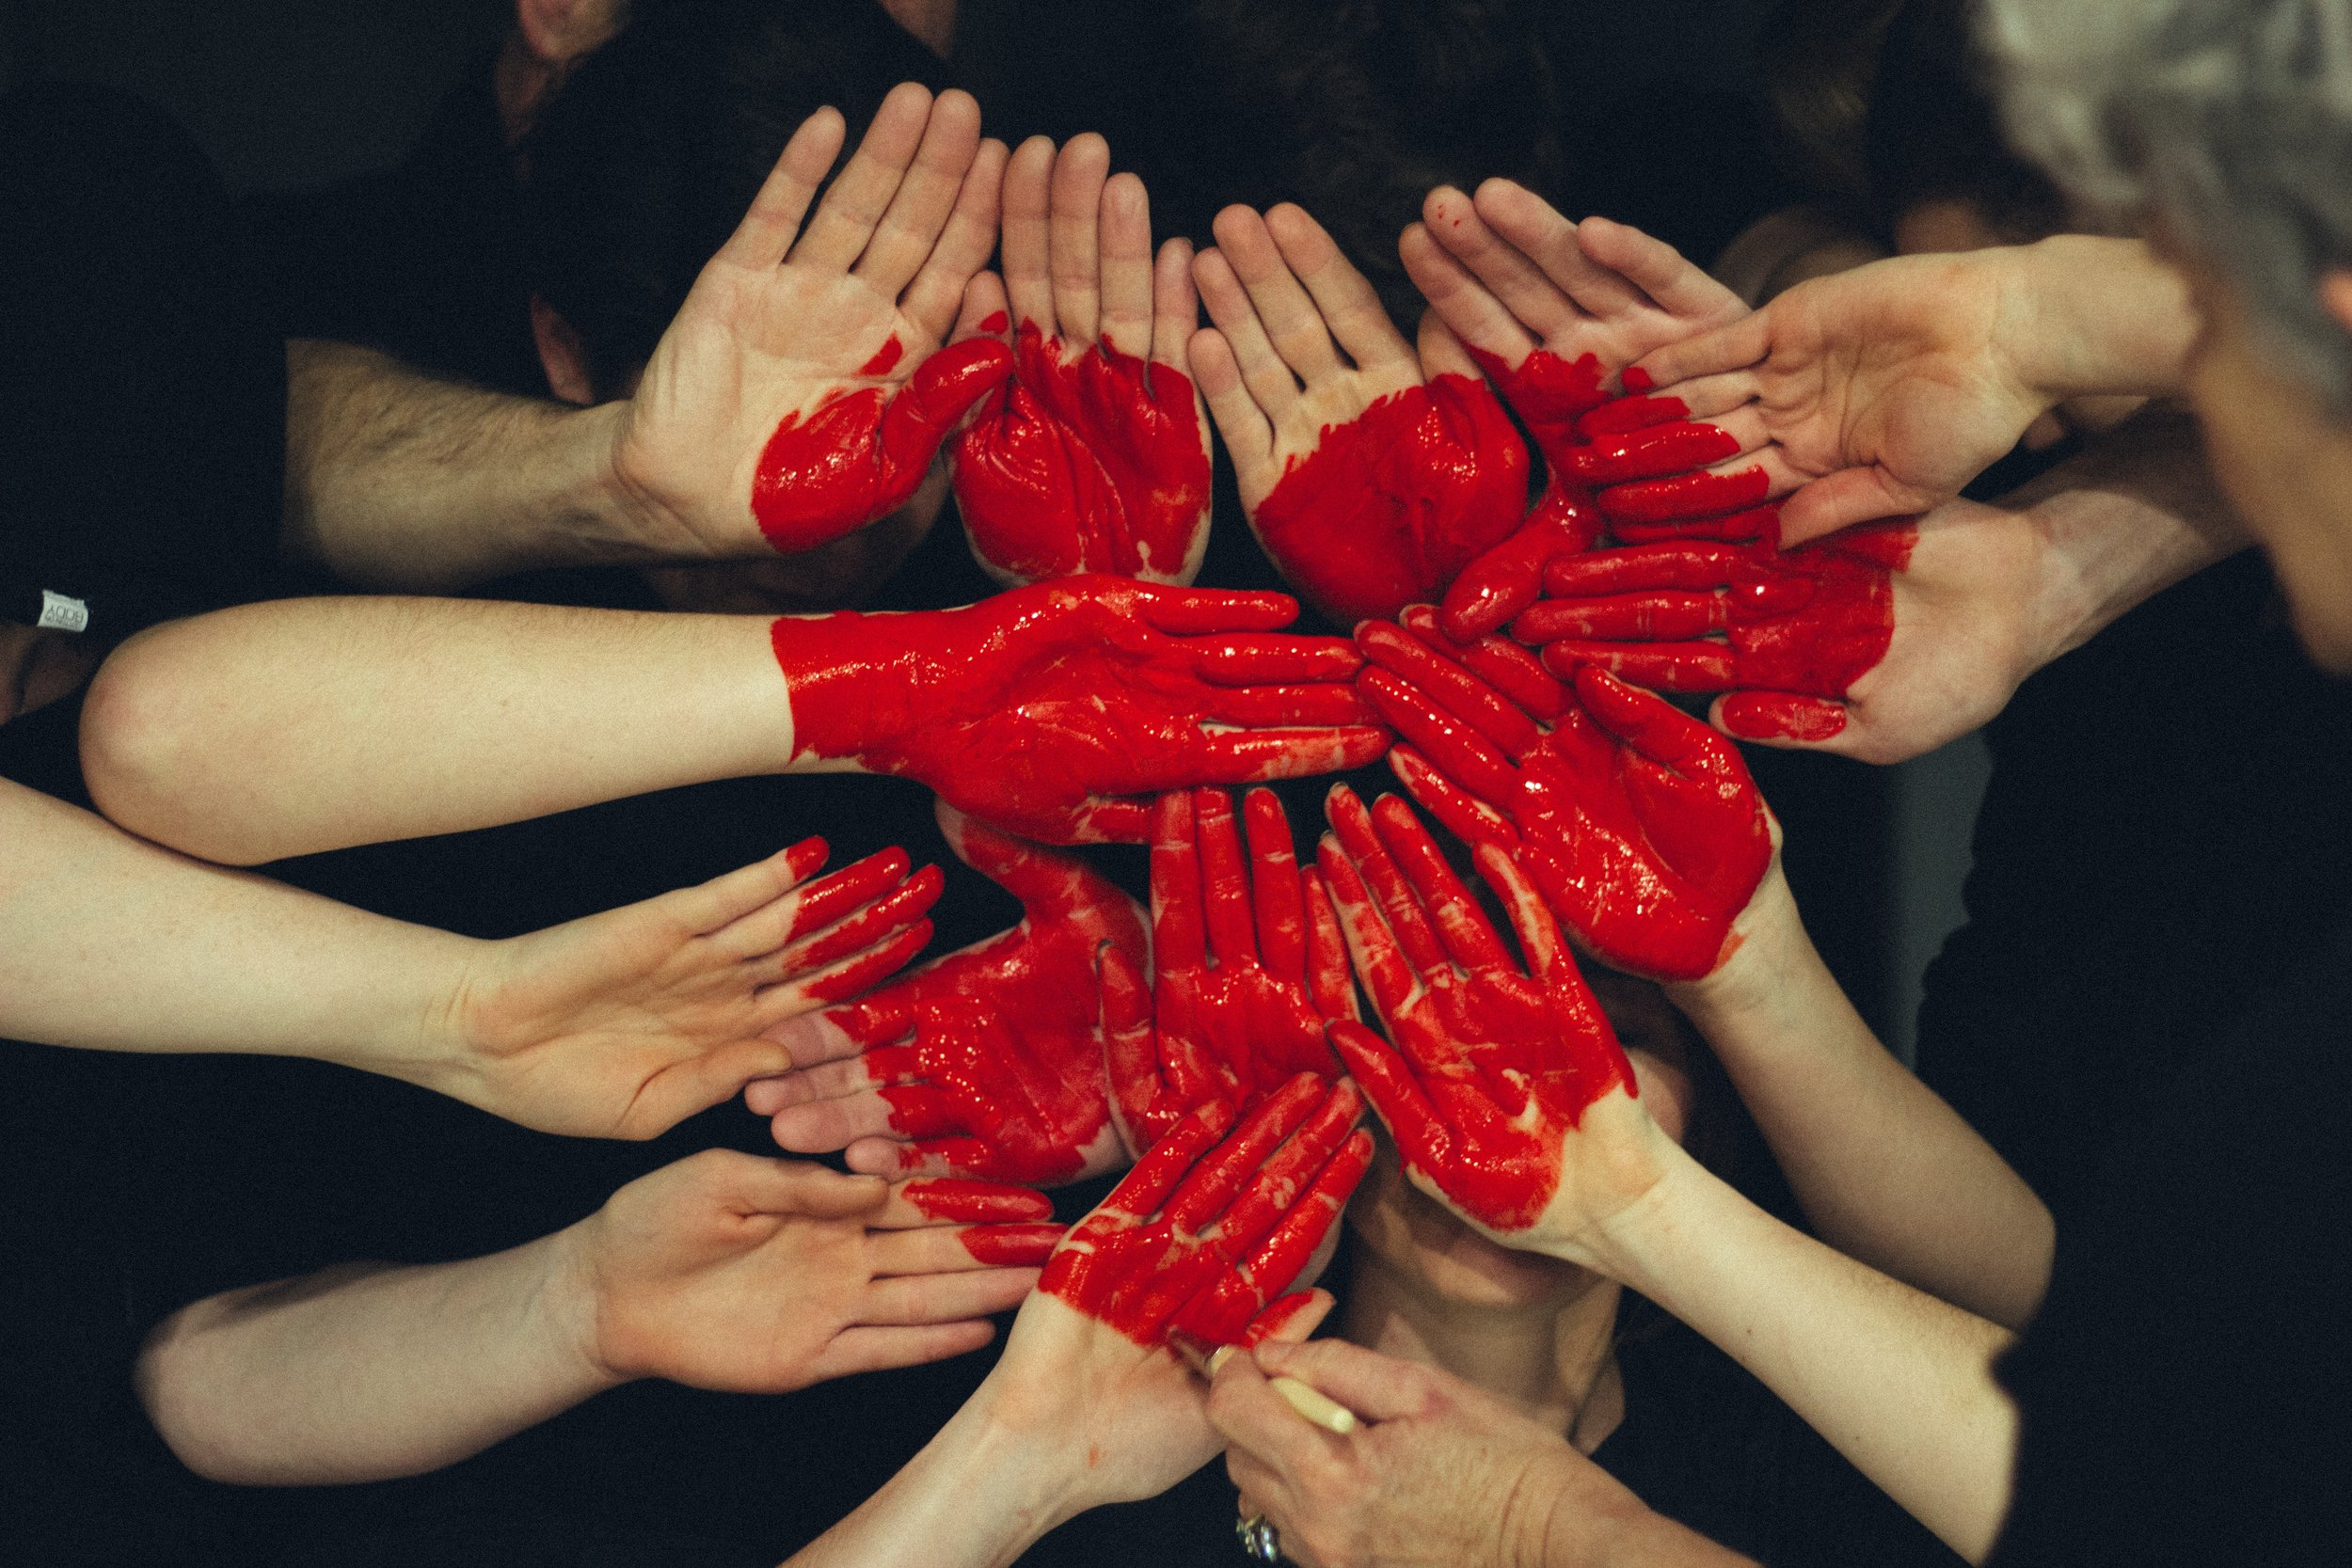 A number of hands with a red heart painted on them. Credit: Tim Marshall/Unsplash